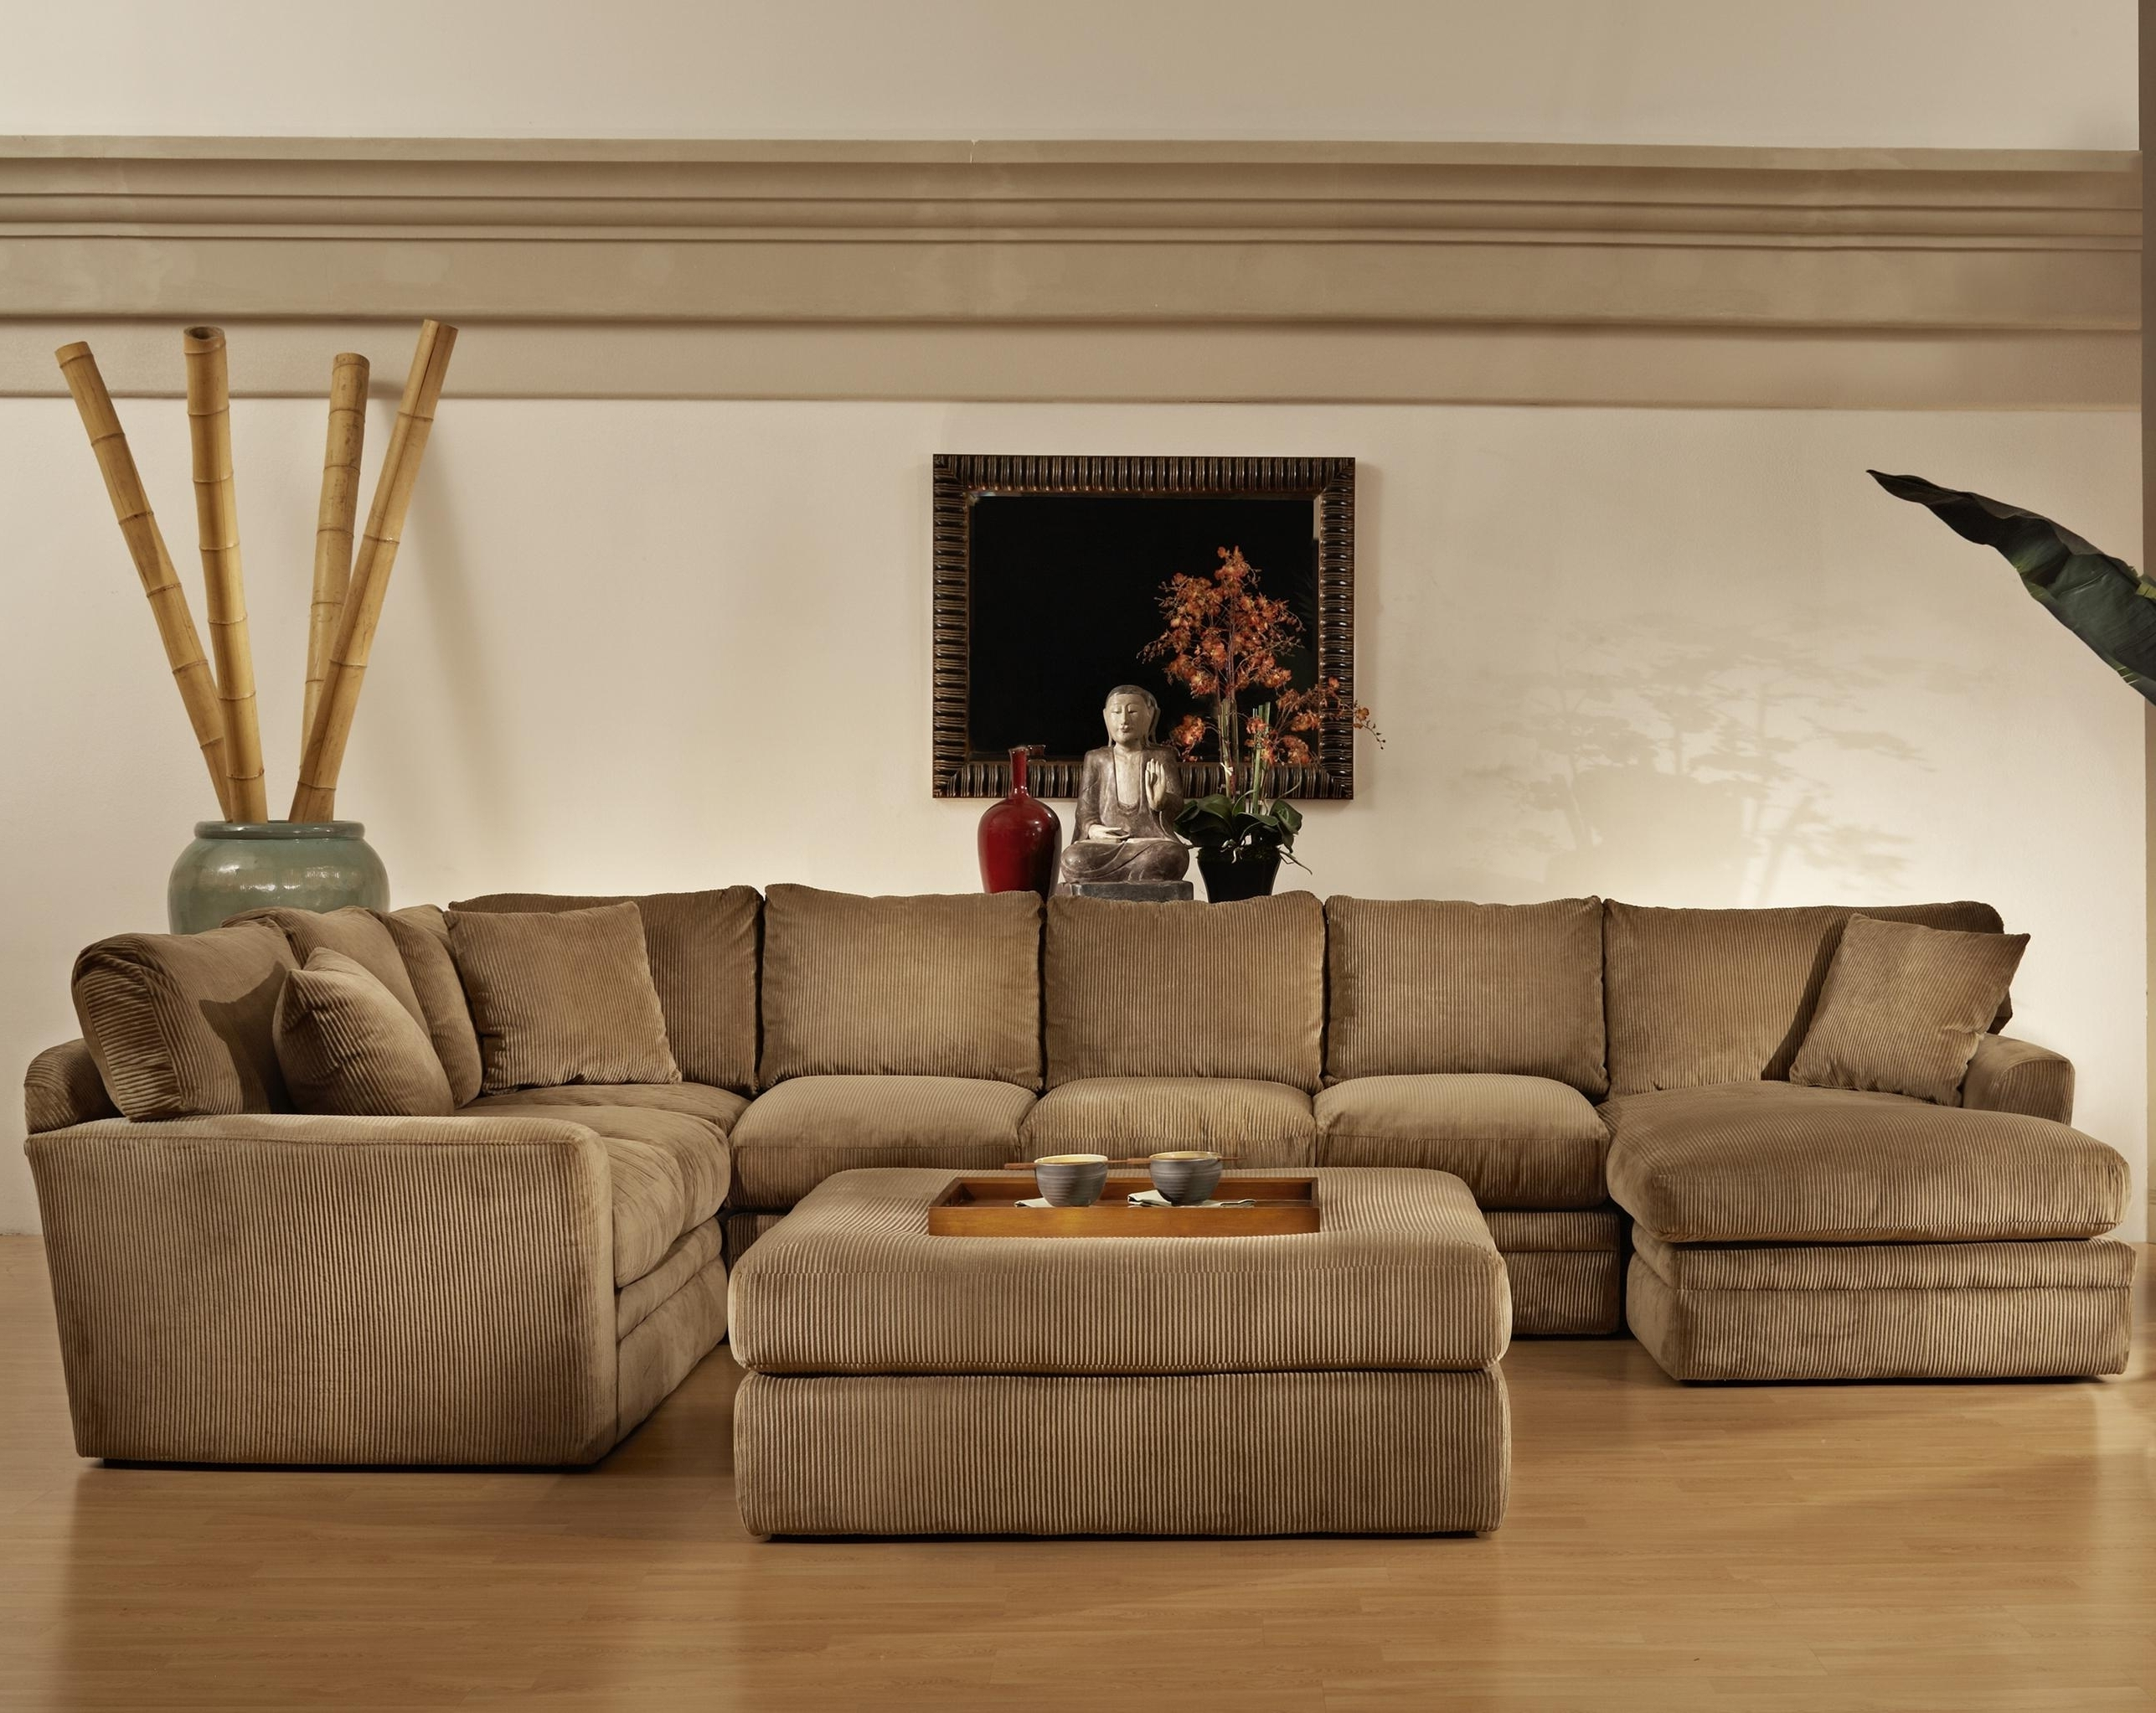 Most Popular Sectional Sofas With Chaise And Ottoman Intended For Extra Large Sectional Sofa With Chaise And Ottoman U Shaped In (View 8 of 15)